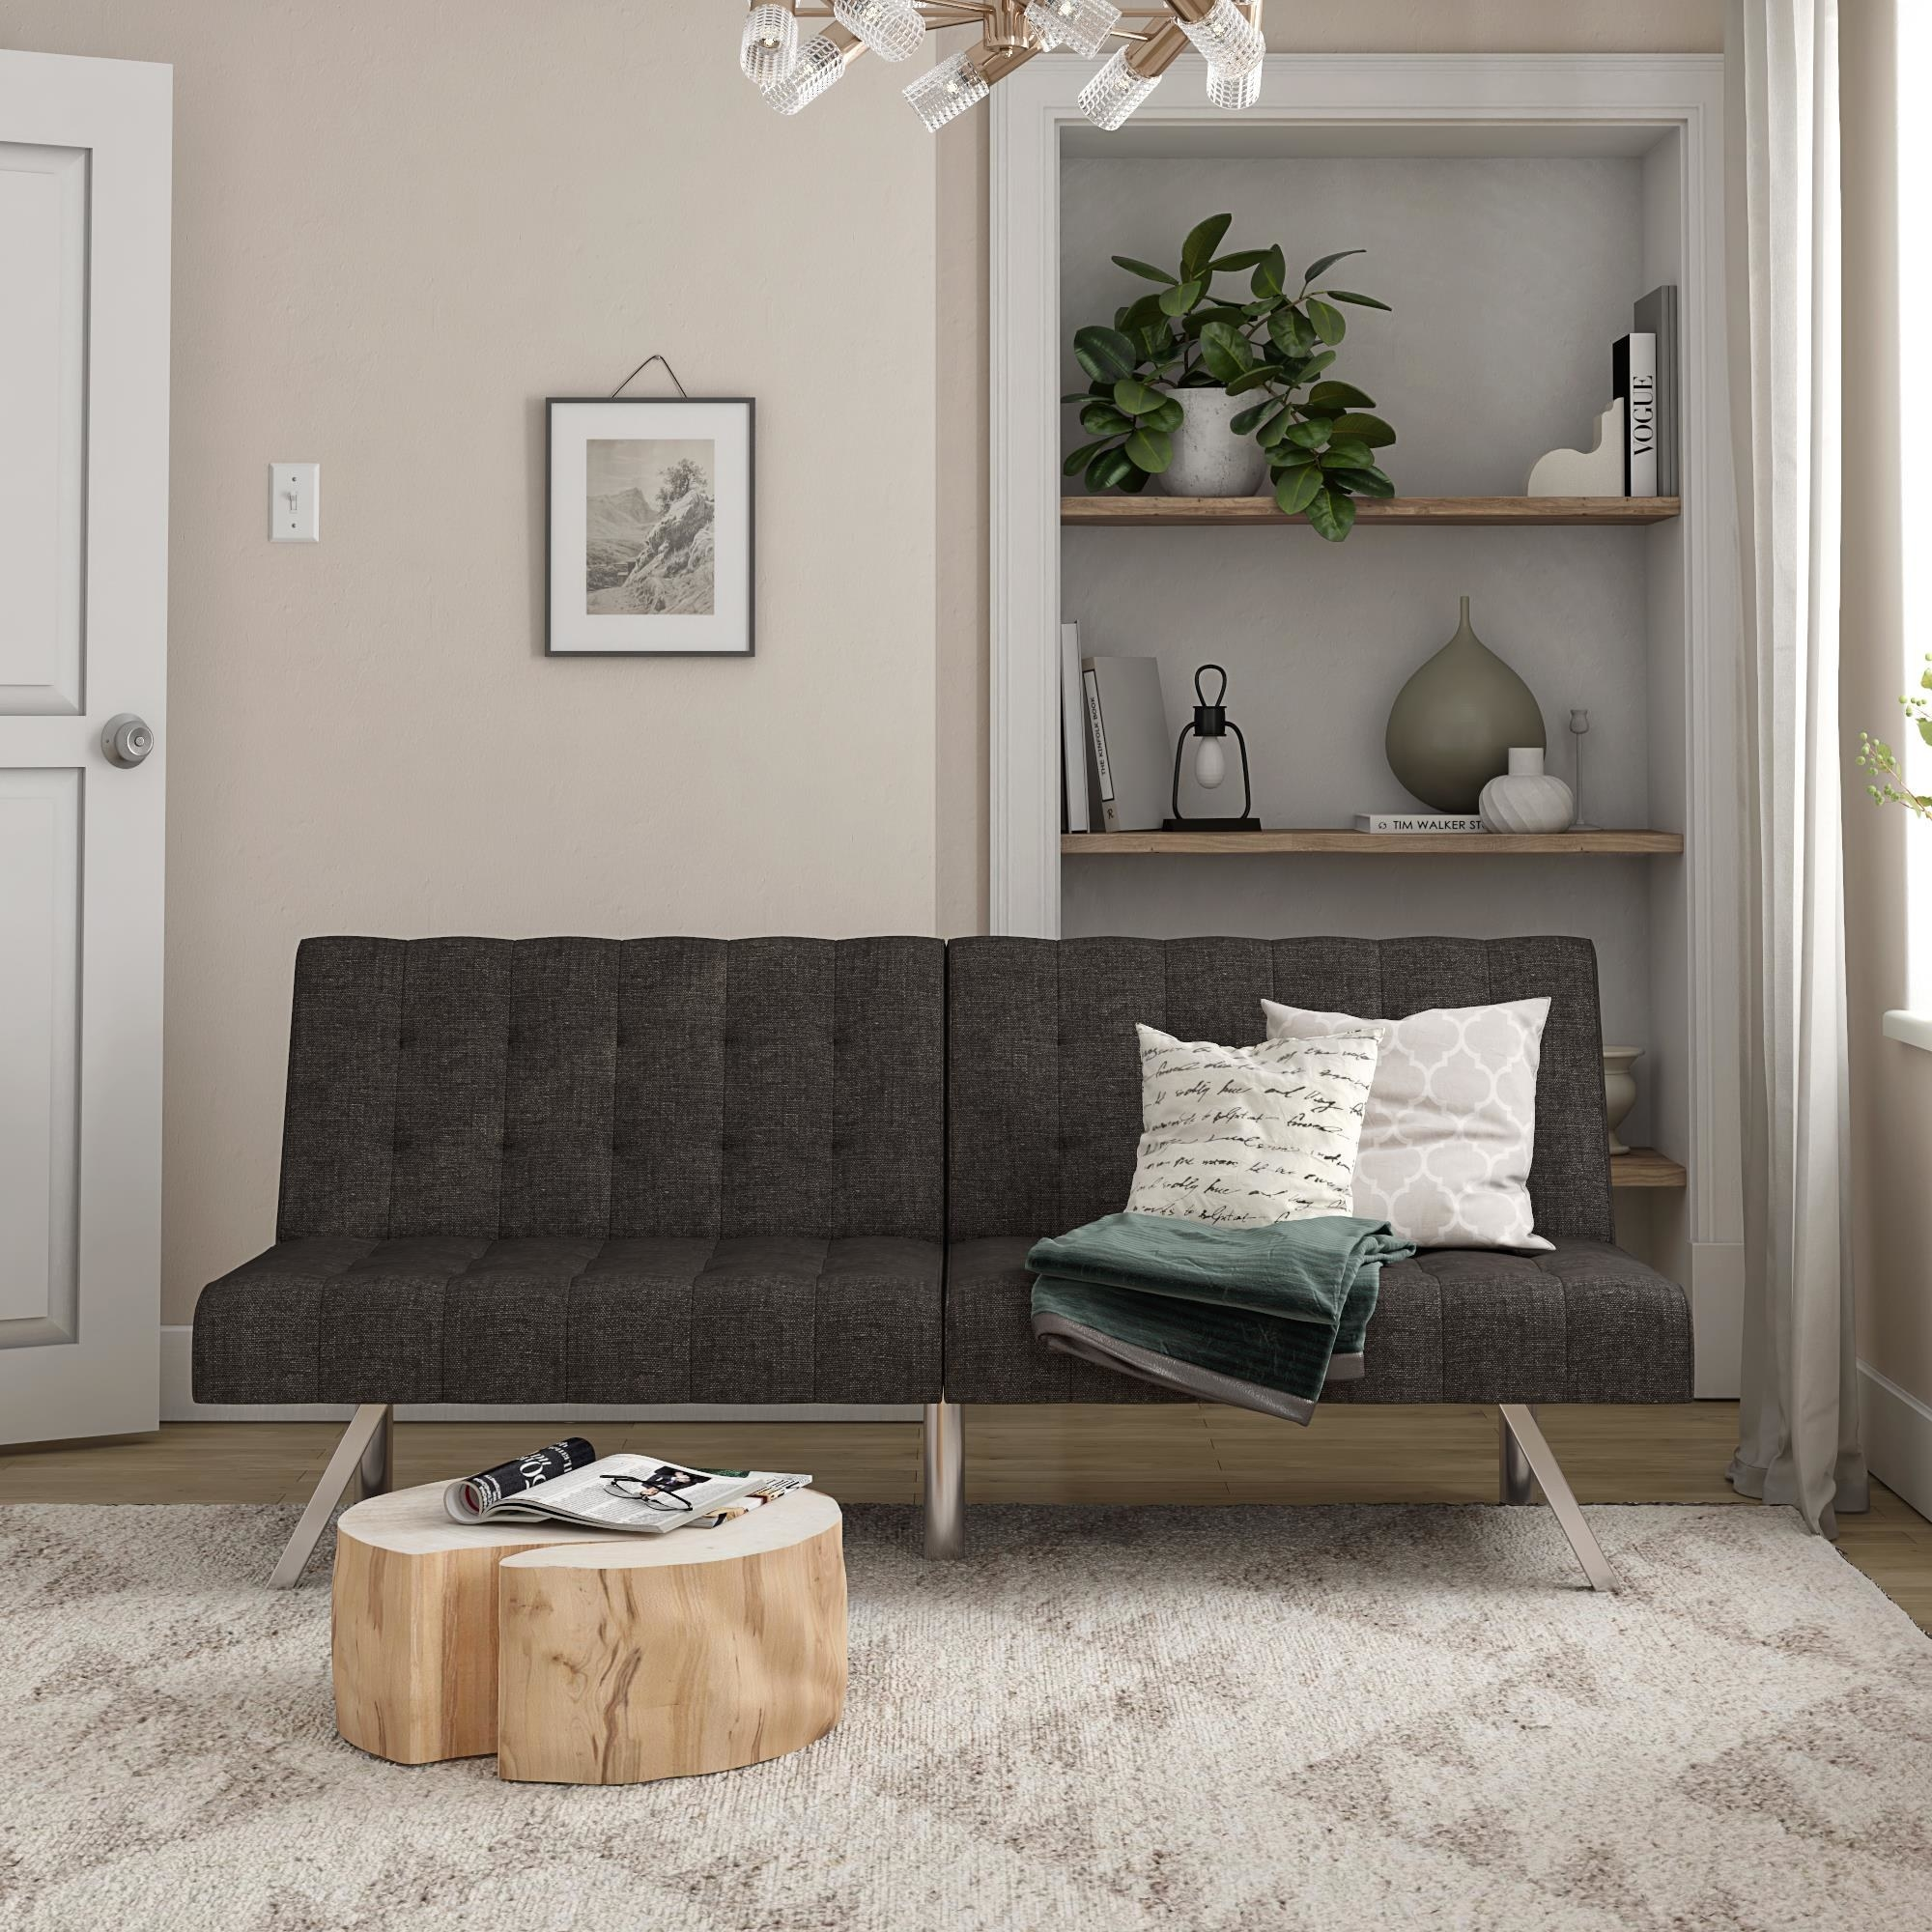 The futon in the color grey linen